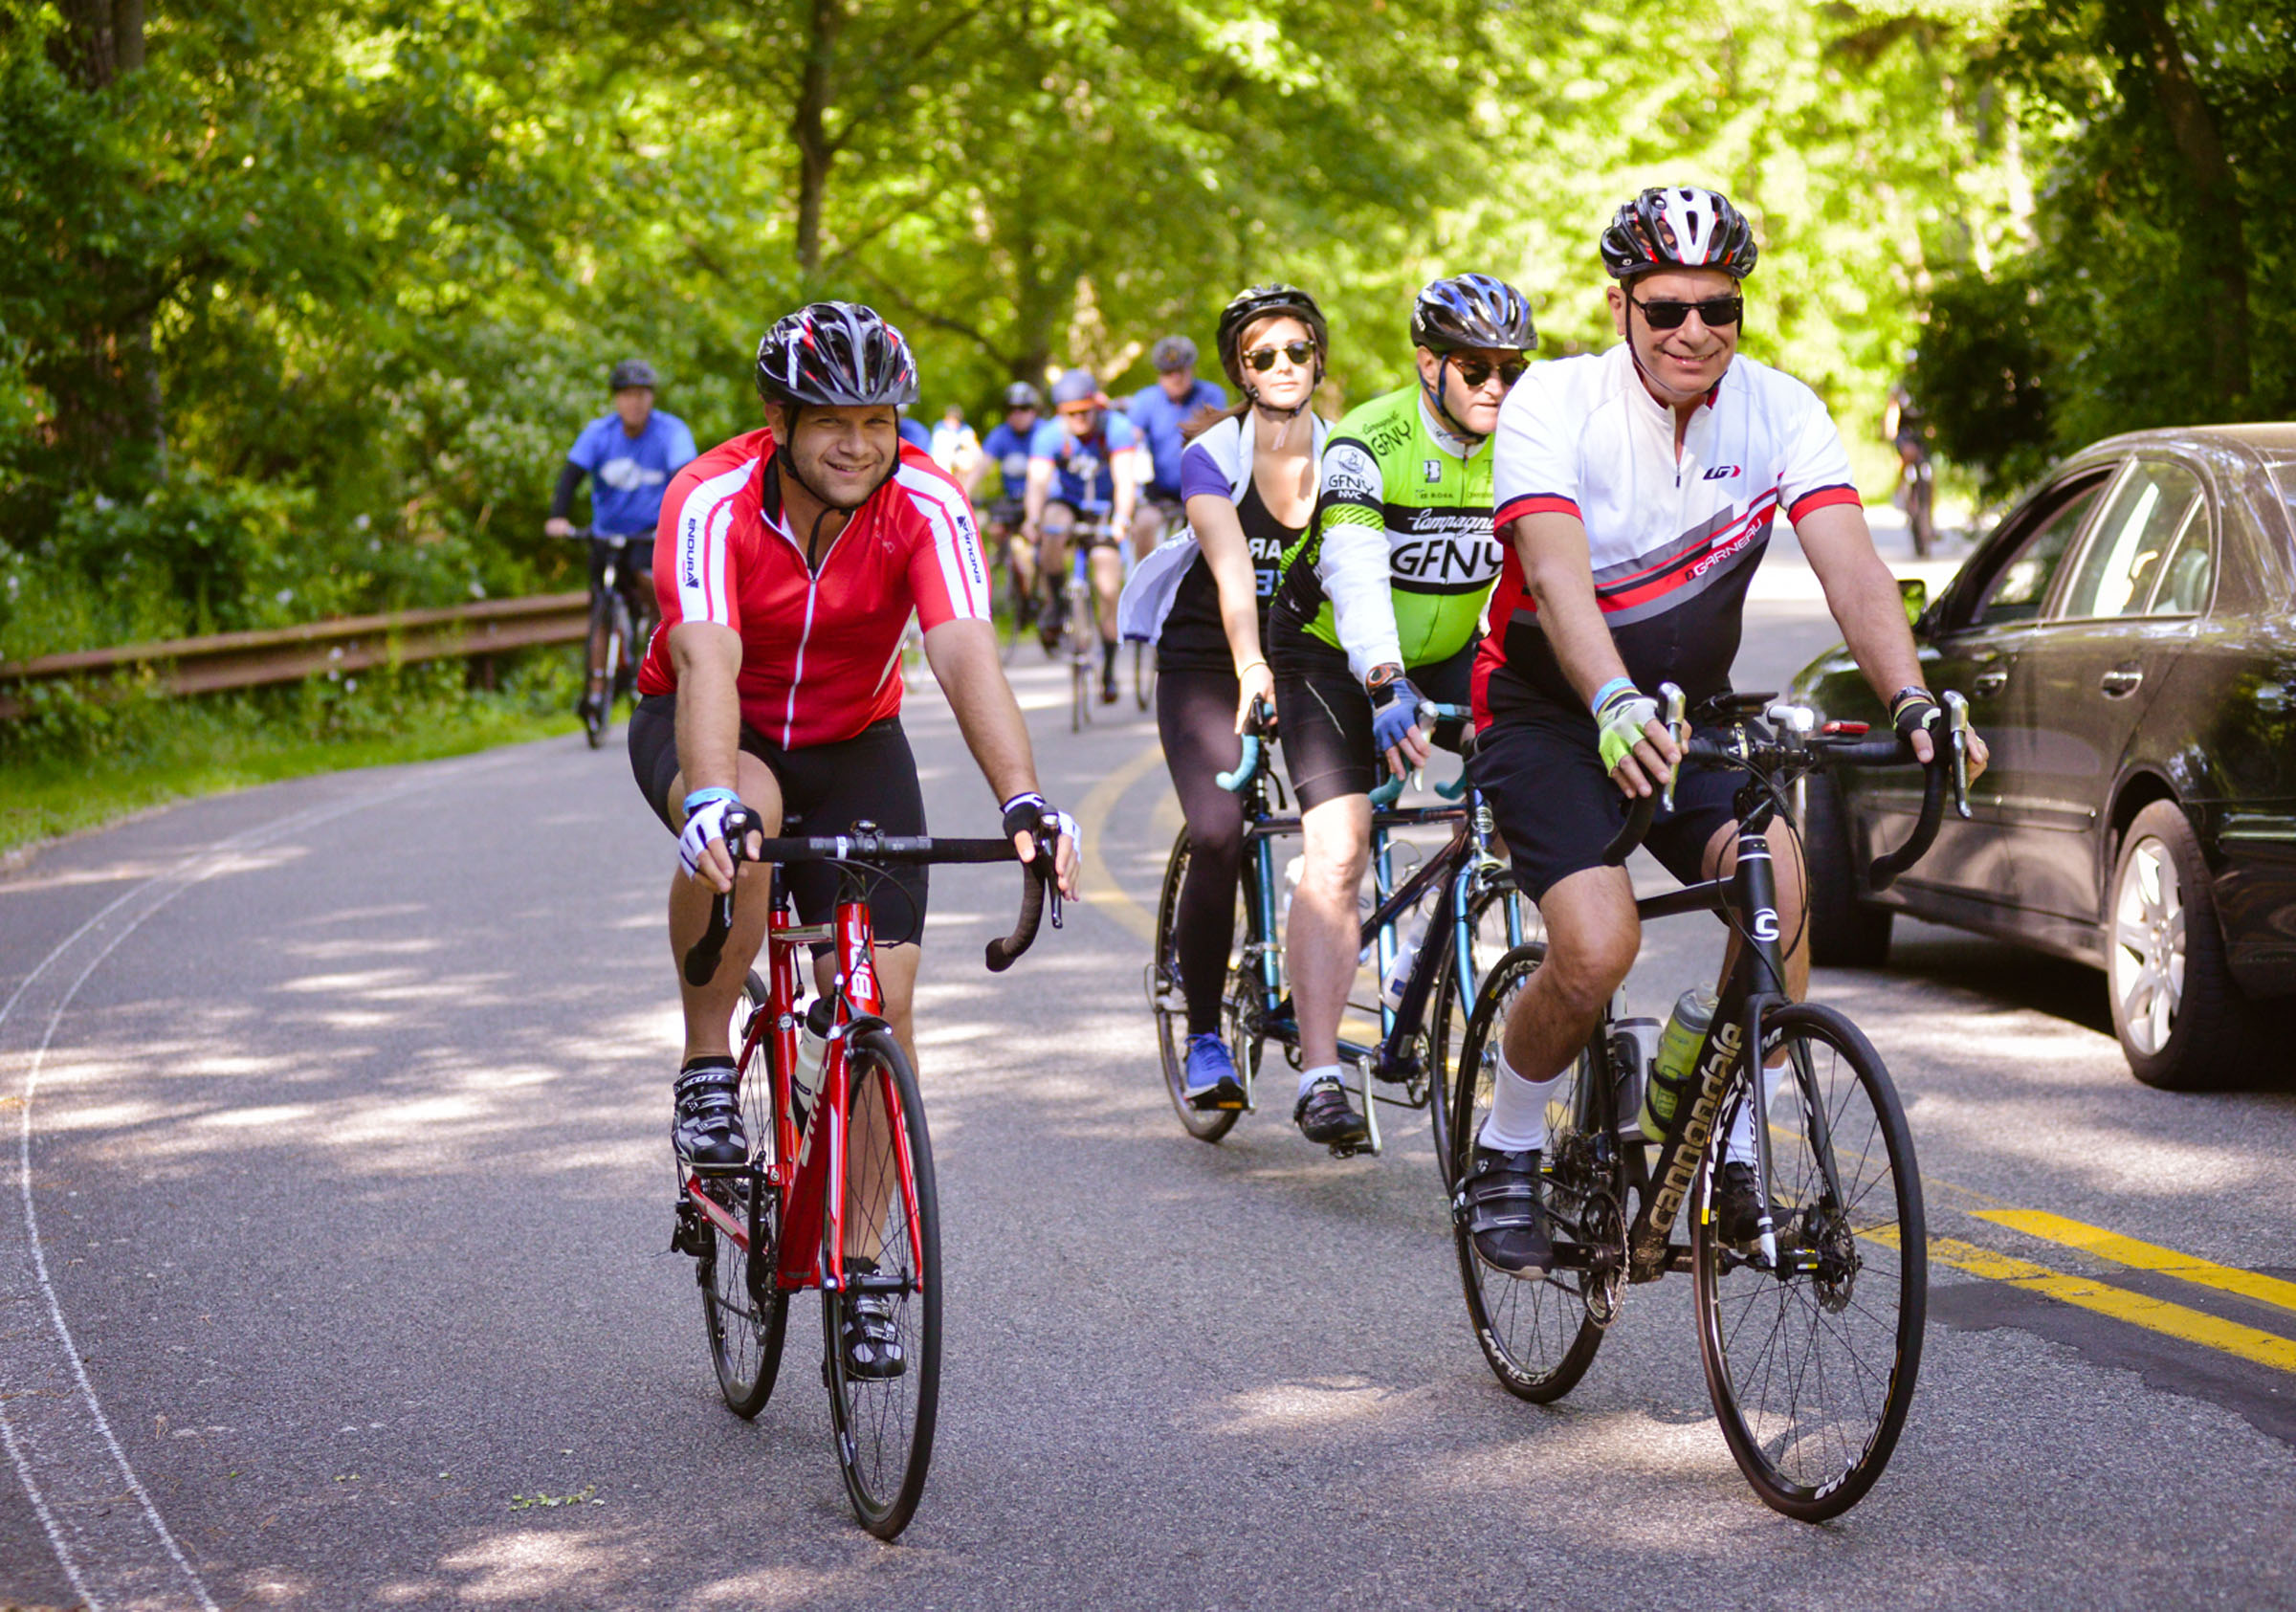 2017-06-04 GTD4A Charity Bike Ride - BCC - Paramus NJ-1891.jpg